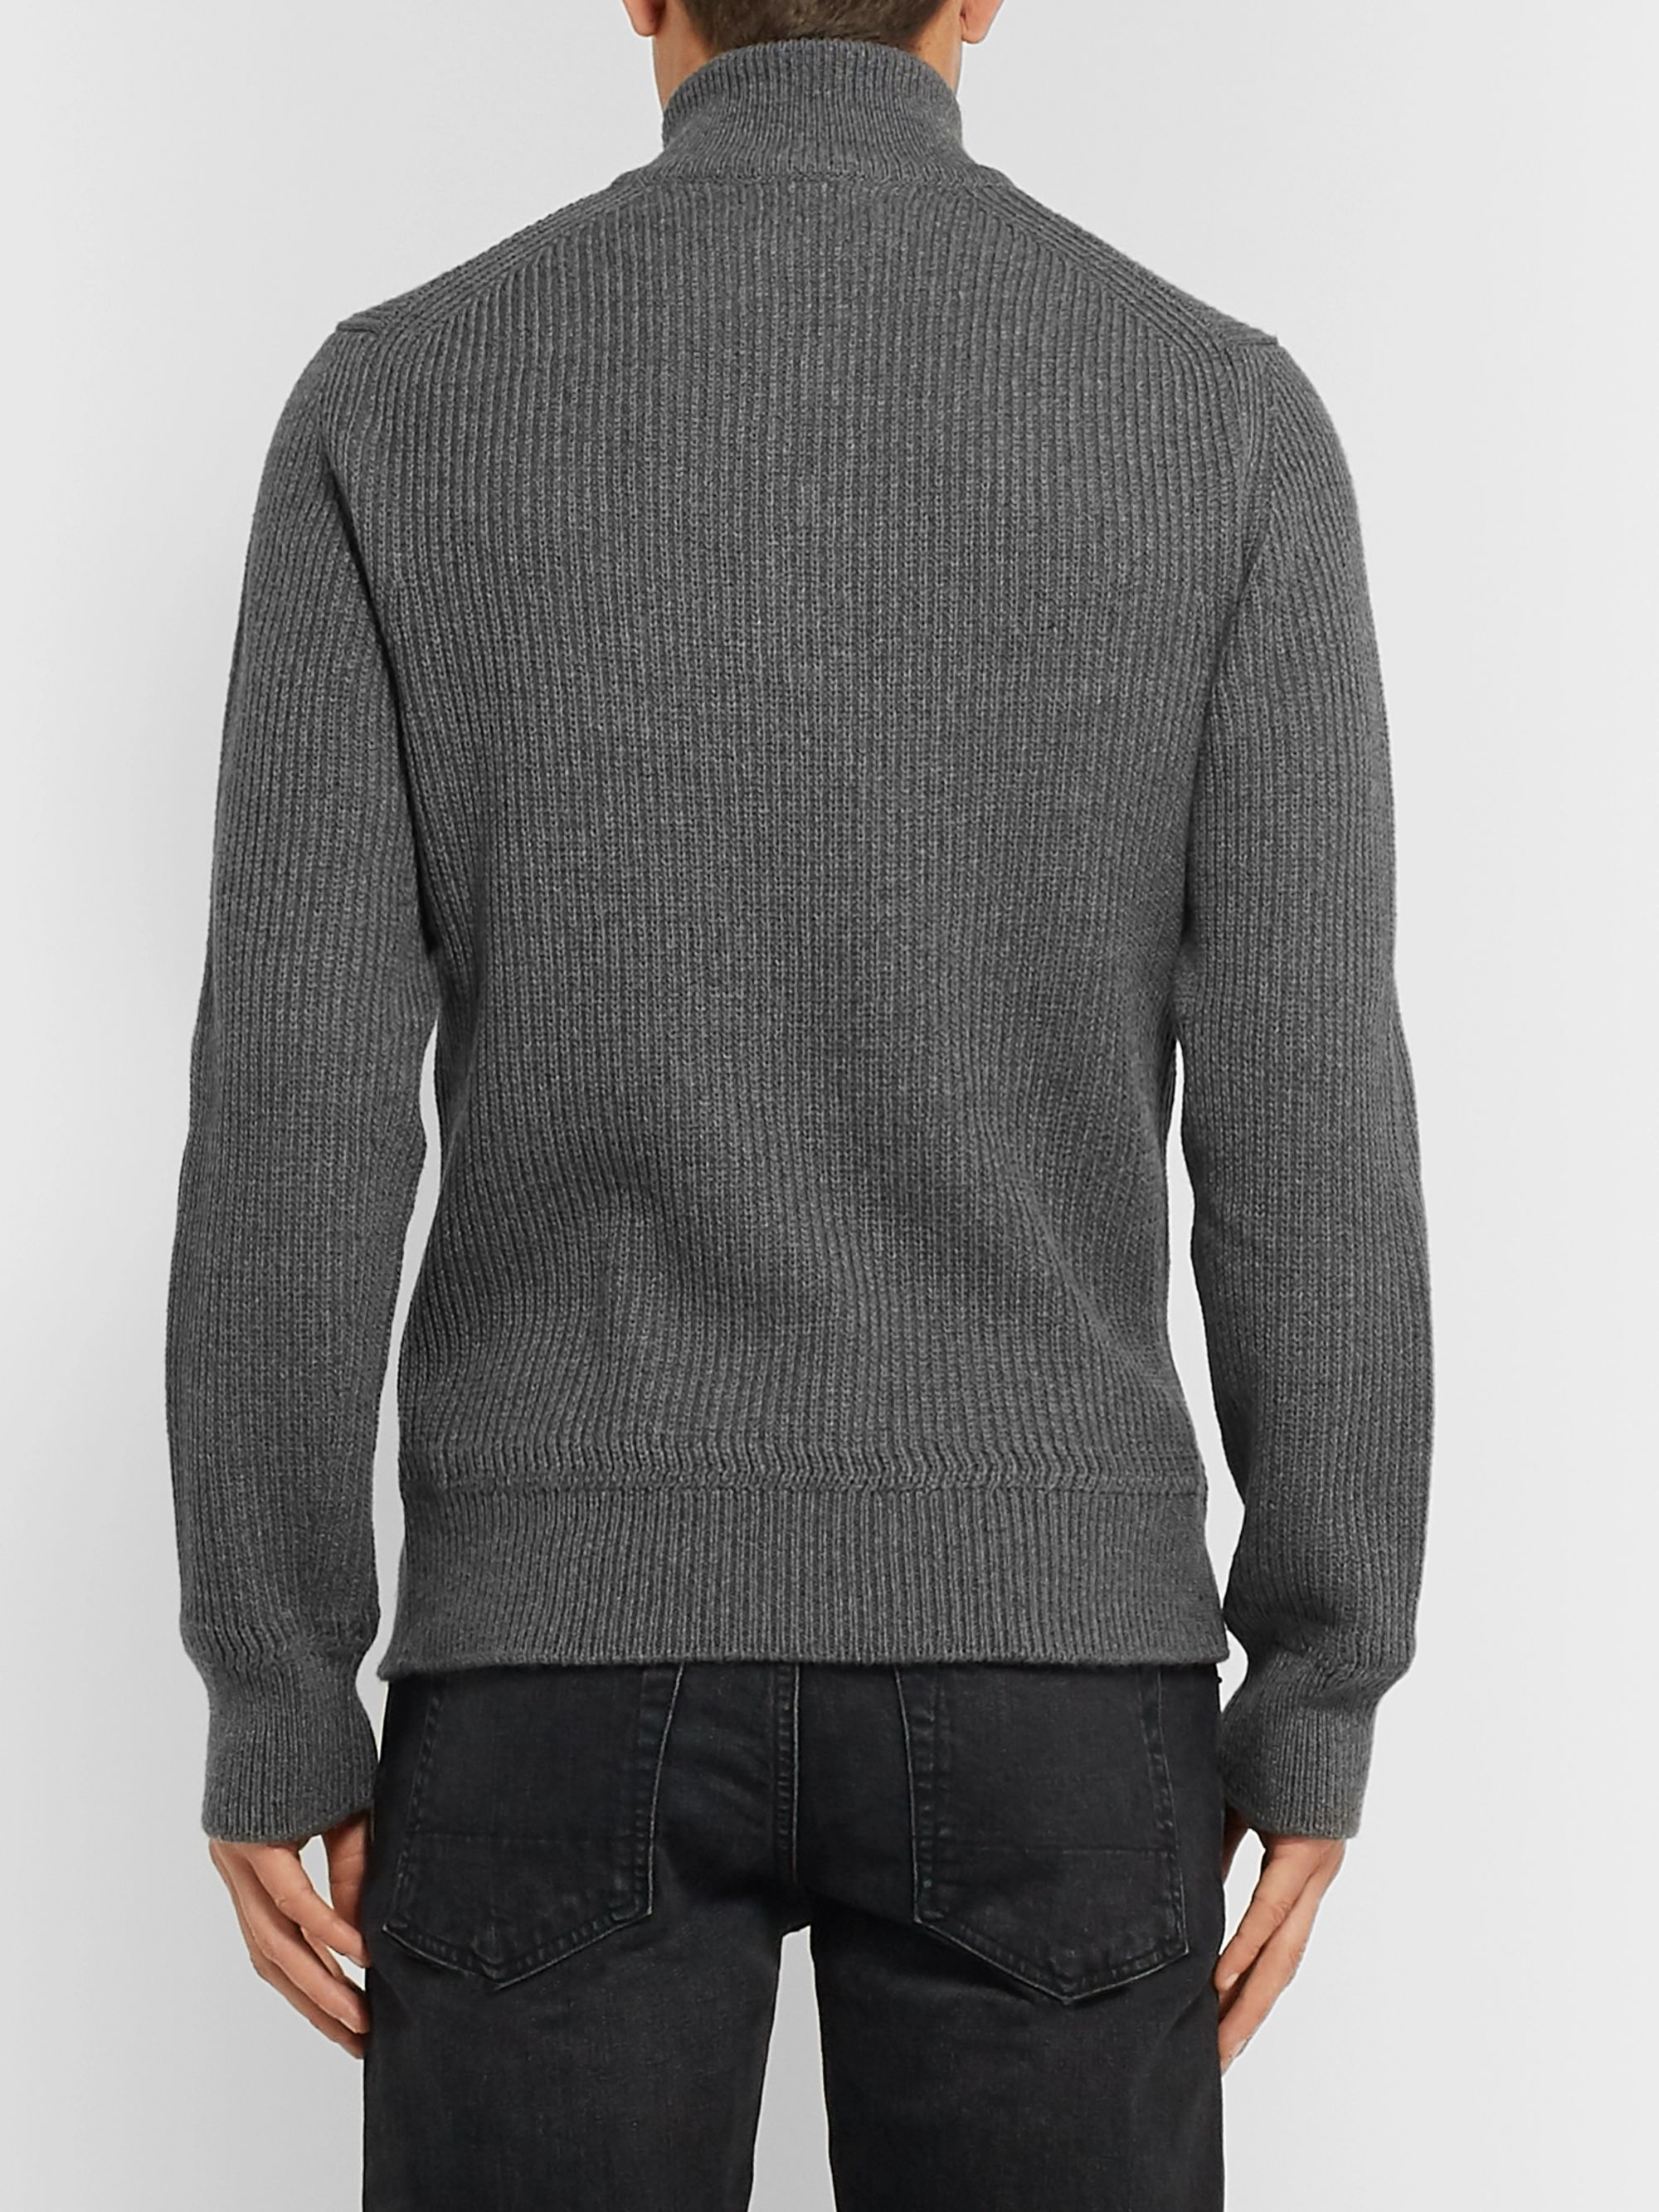 TOM FORD Ribbed Wool and Cashmere-Blend Half-Zip Sweater